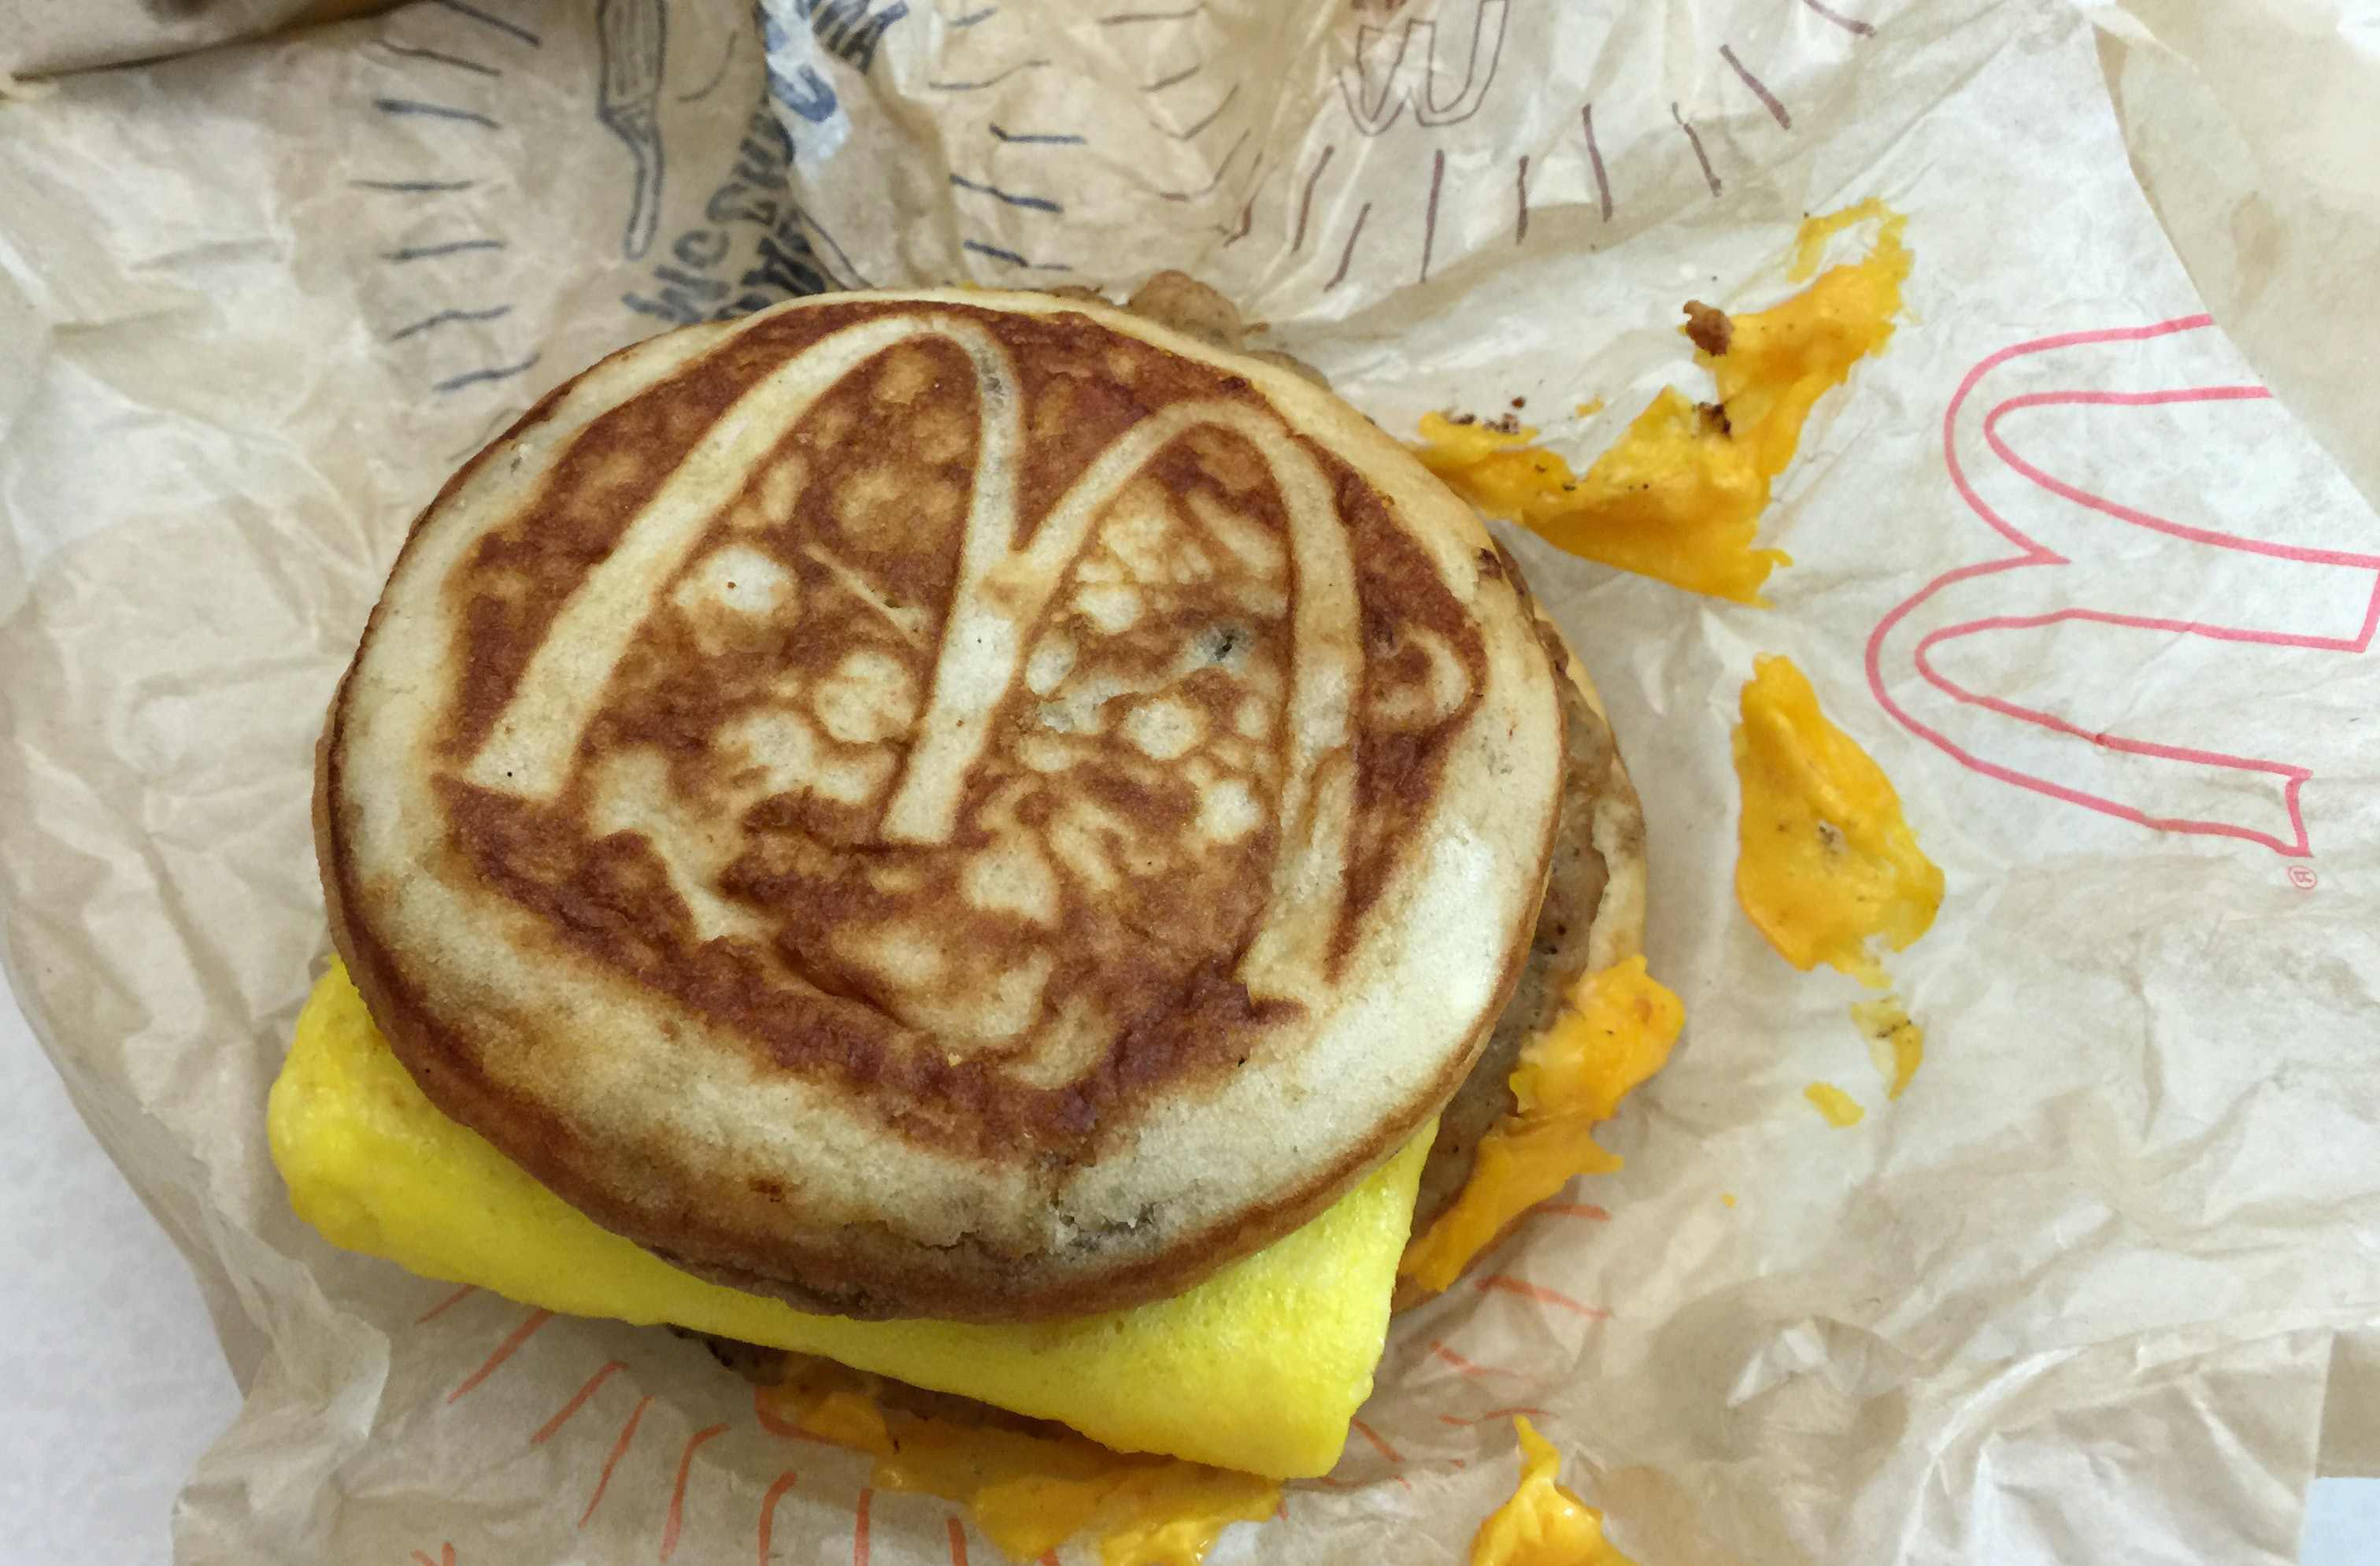 McDonald's employees reveal the truth about all-day breakfast